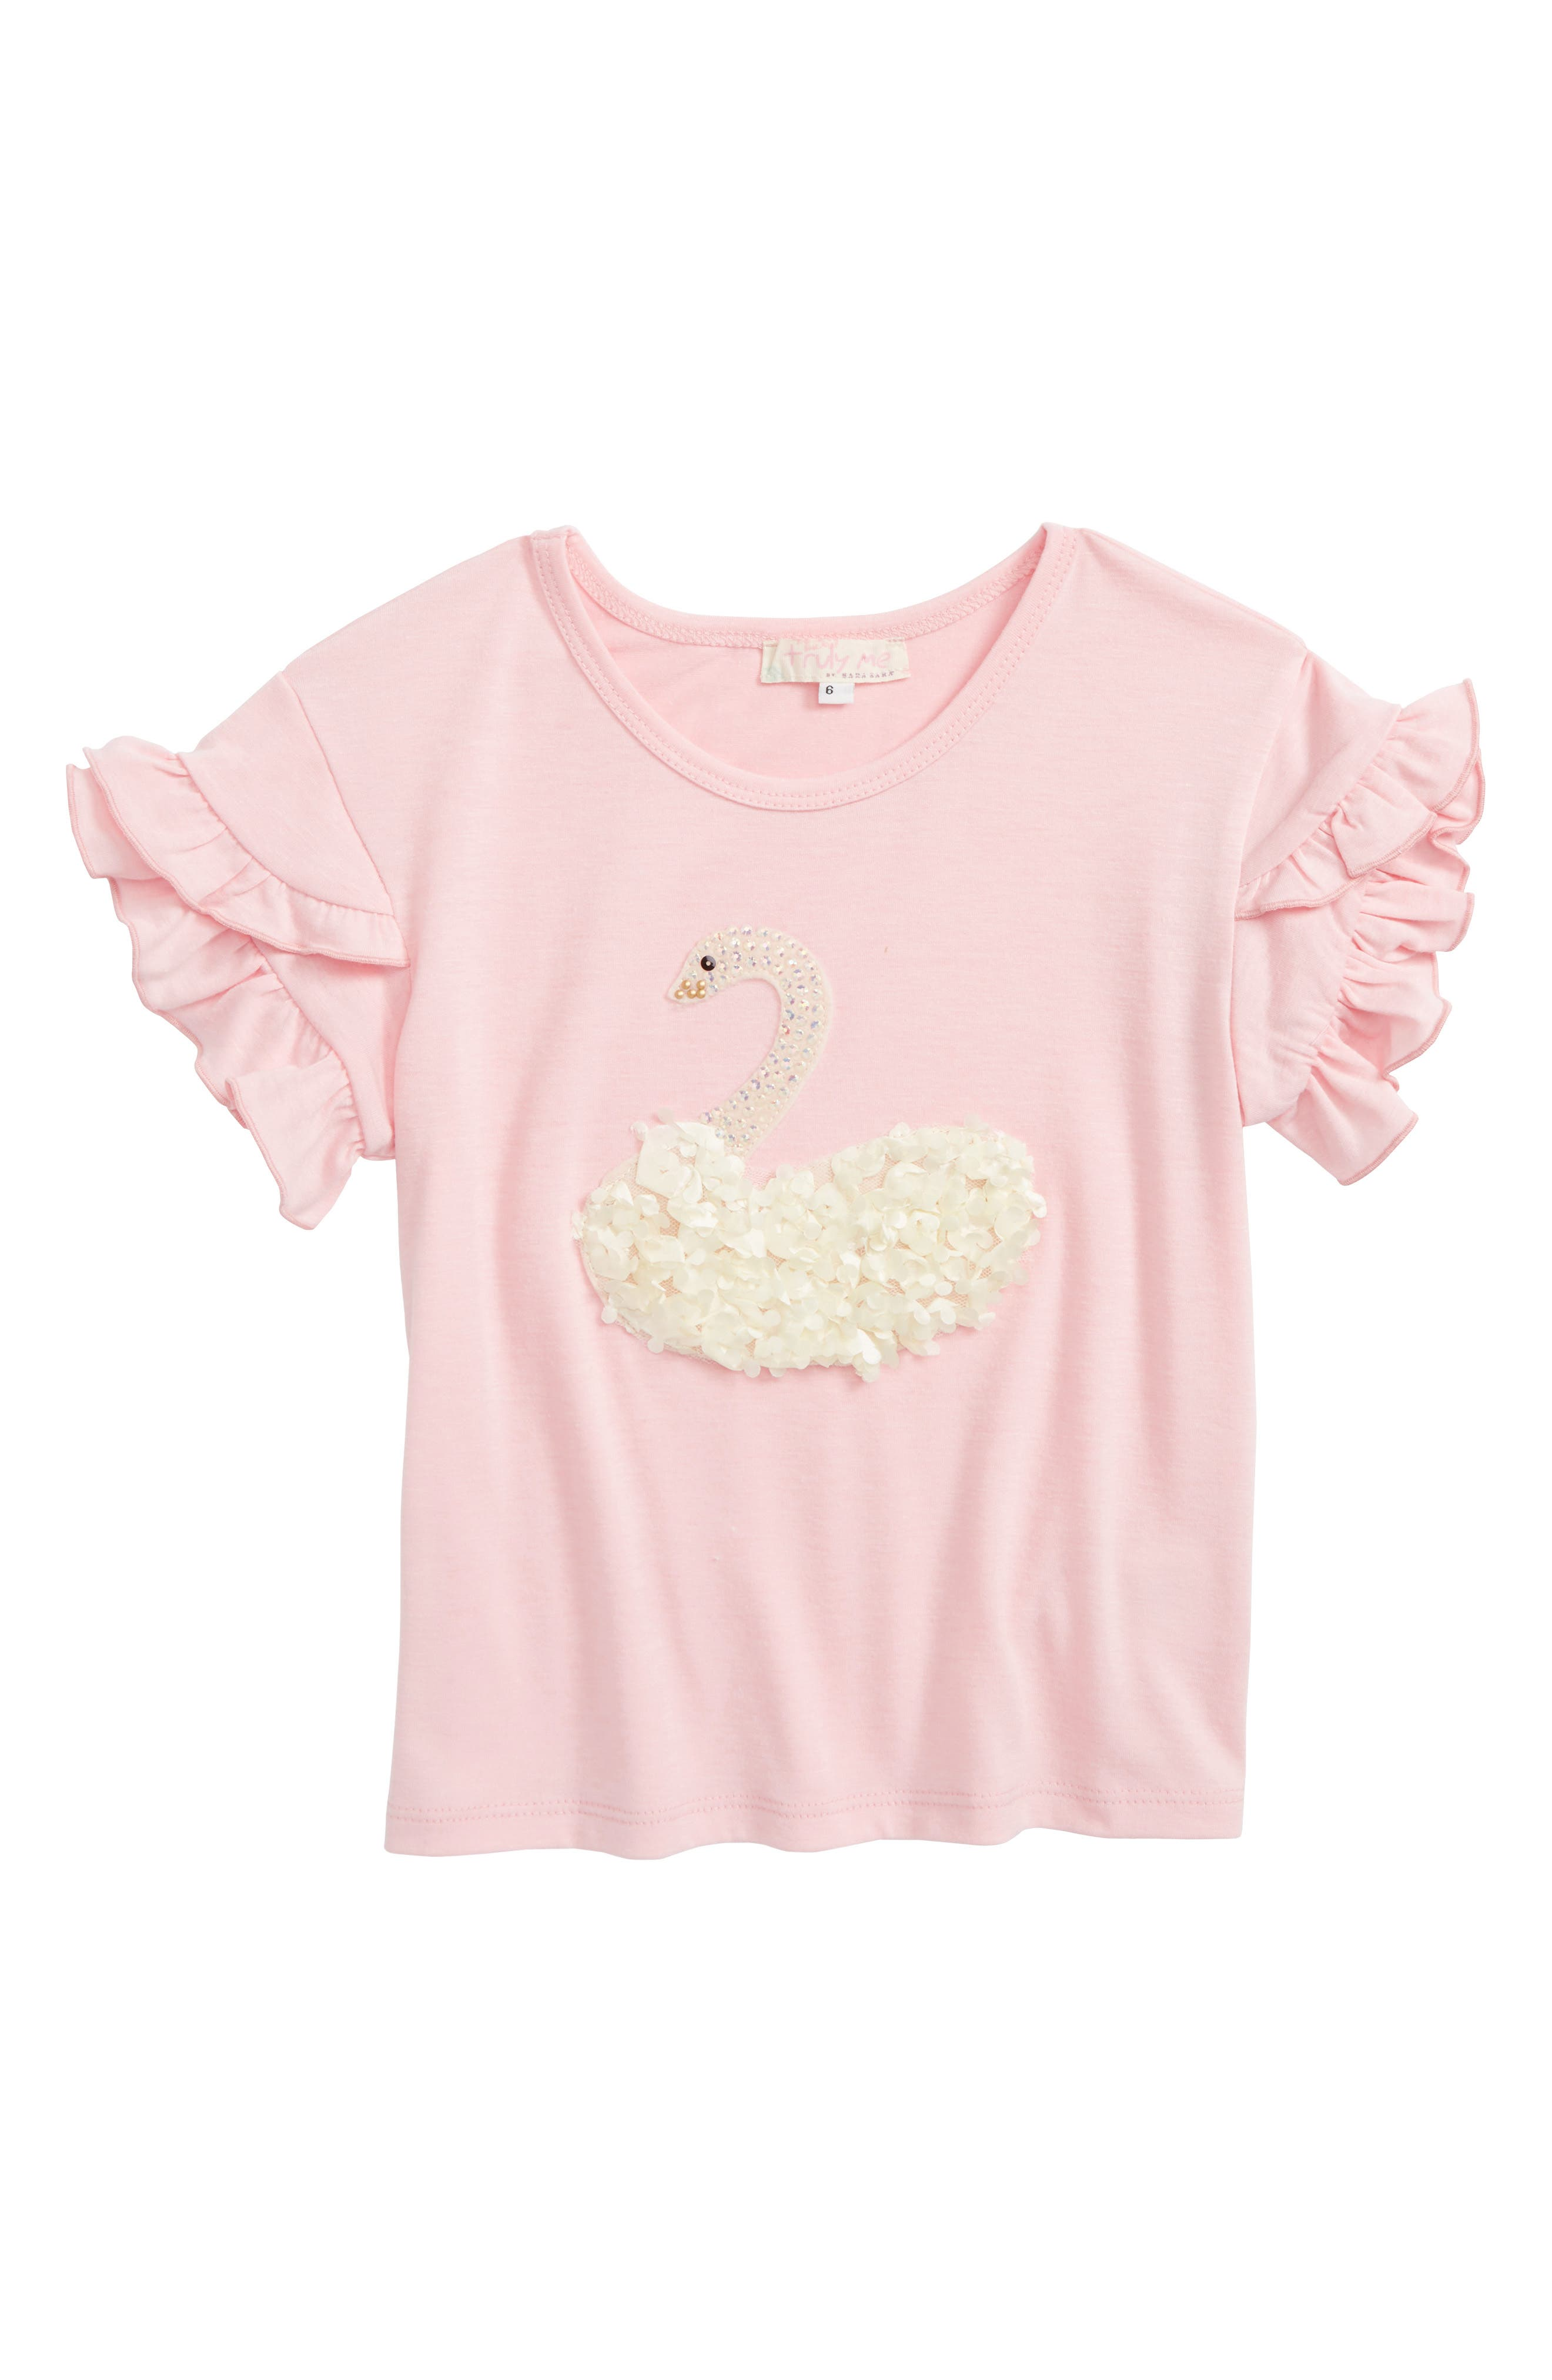 Alternate Image 1 Selected - Truly Me Swan Appliqué Tee (Toddler Girls & Little Girls)